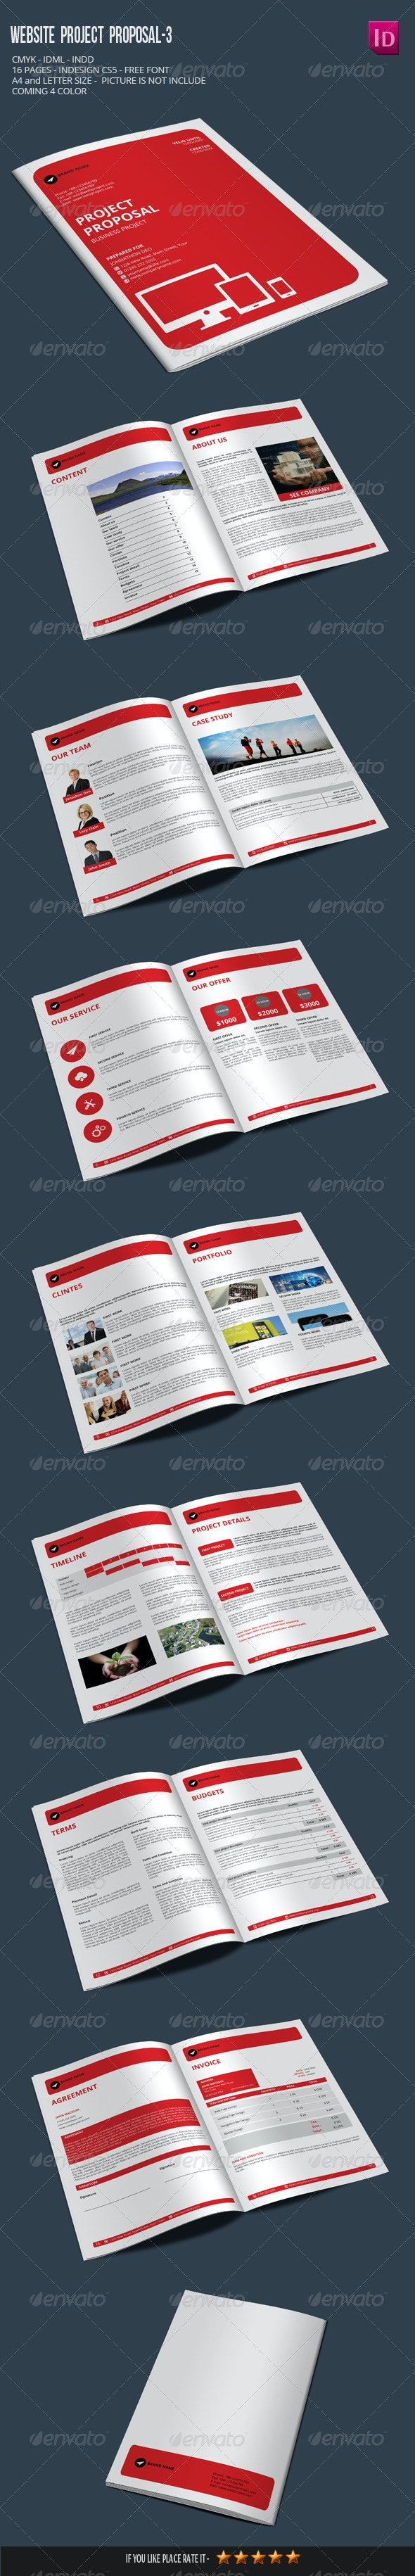 Website Project Proposal-3 - Proposals & Invoices Stationery